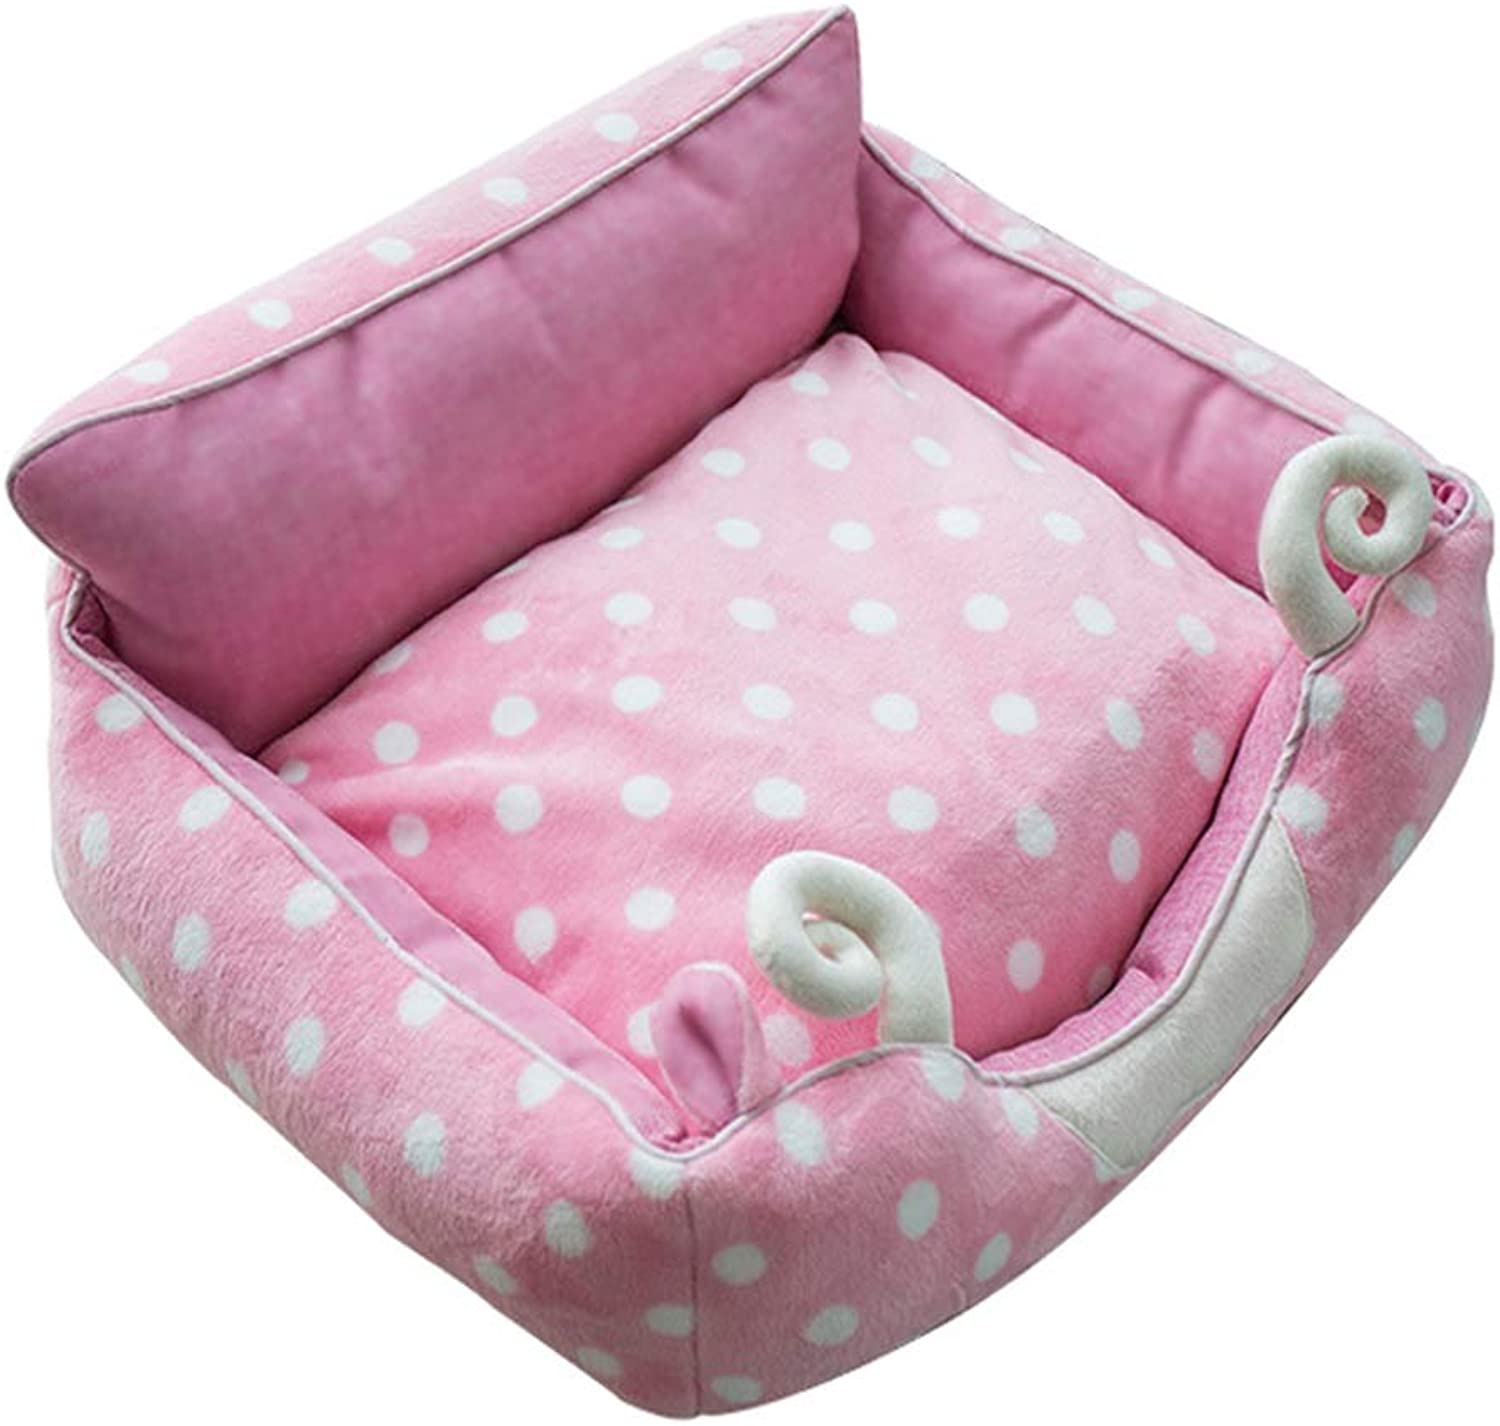 Pet Bed Pink Lamb Model Dog Bed Cat Nest Teddy Small Dog Fully Removable and Washable Four Seasons Universal Warm Pet Supplies (Size   L)